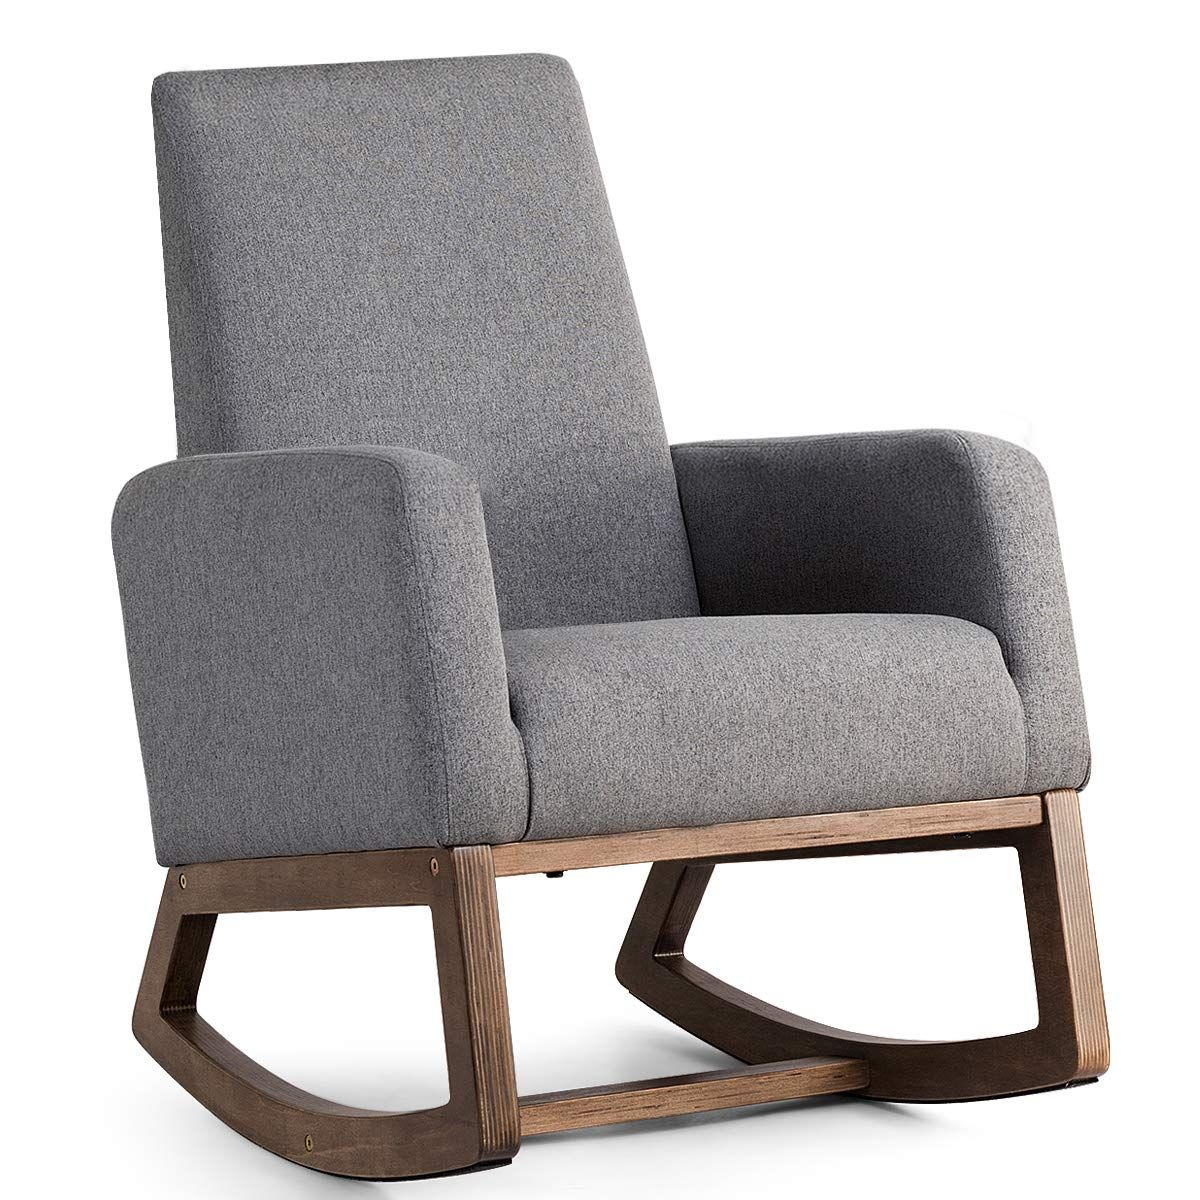 Giantex Upholstered Rocking Chair Modern High